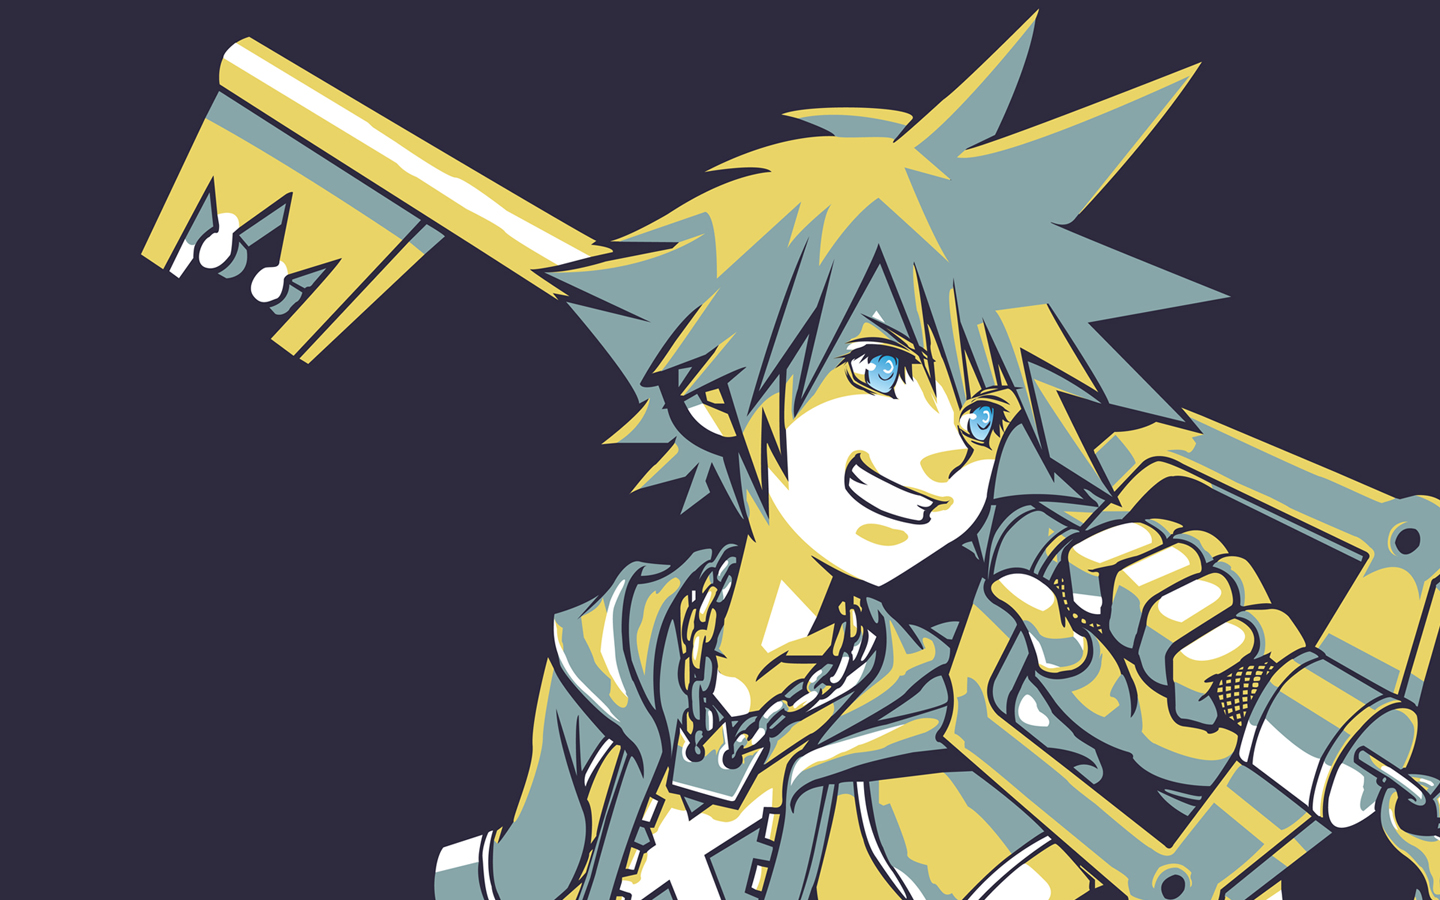 Wallpapers   Kingdom Hearts Insider 1440x900